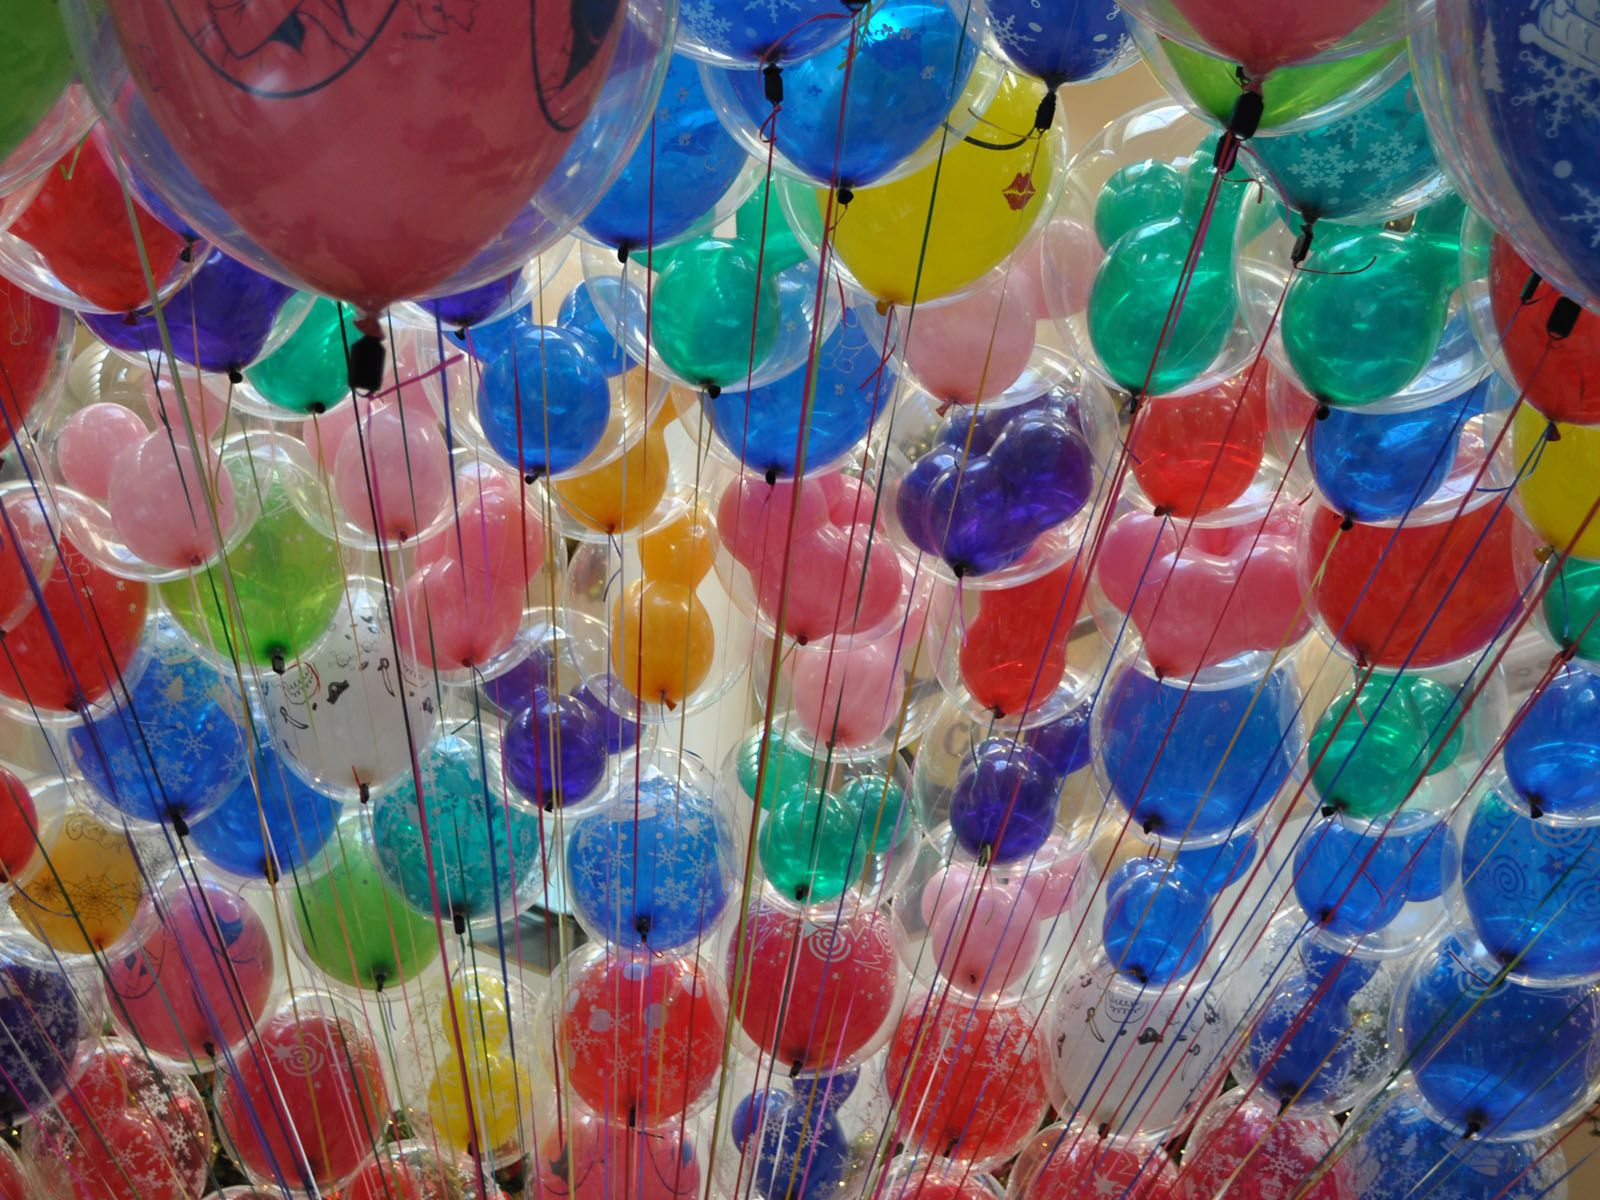 balloons wallpaper photos 59169